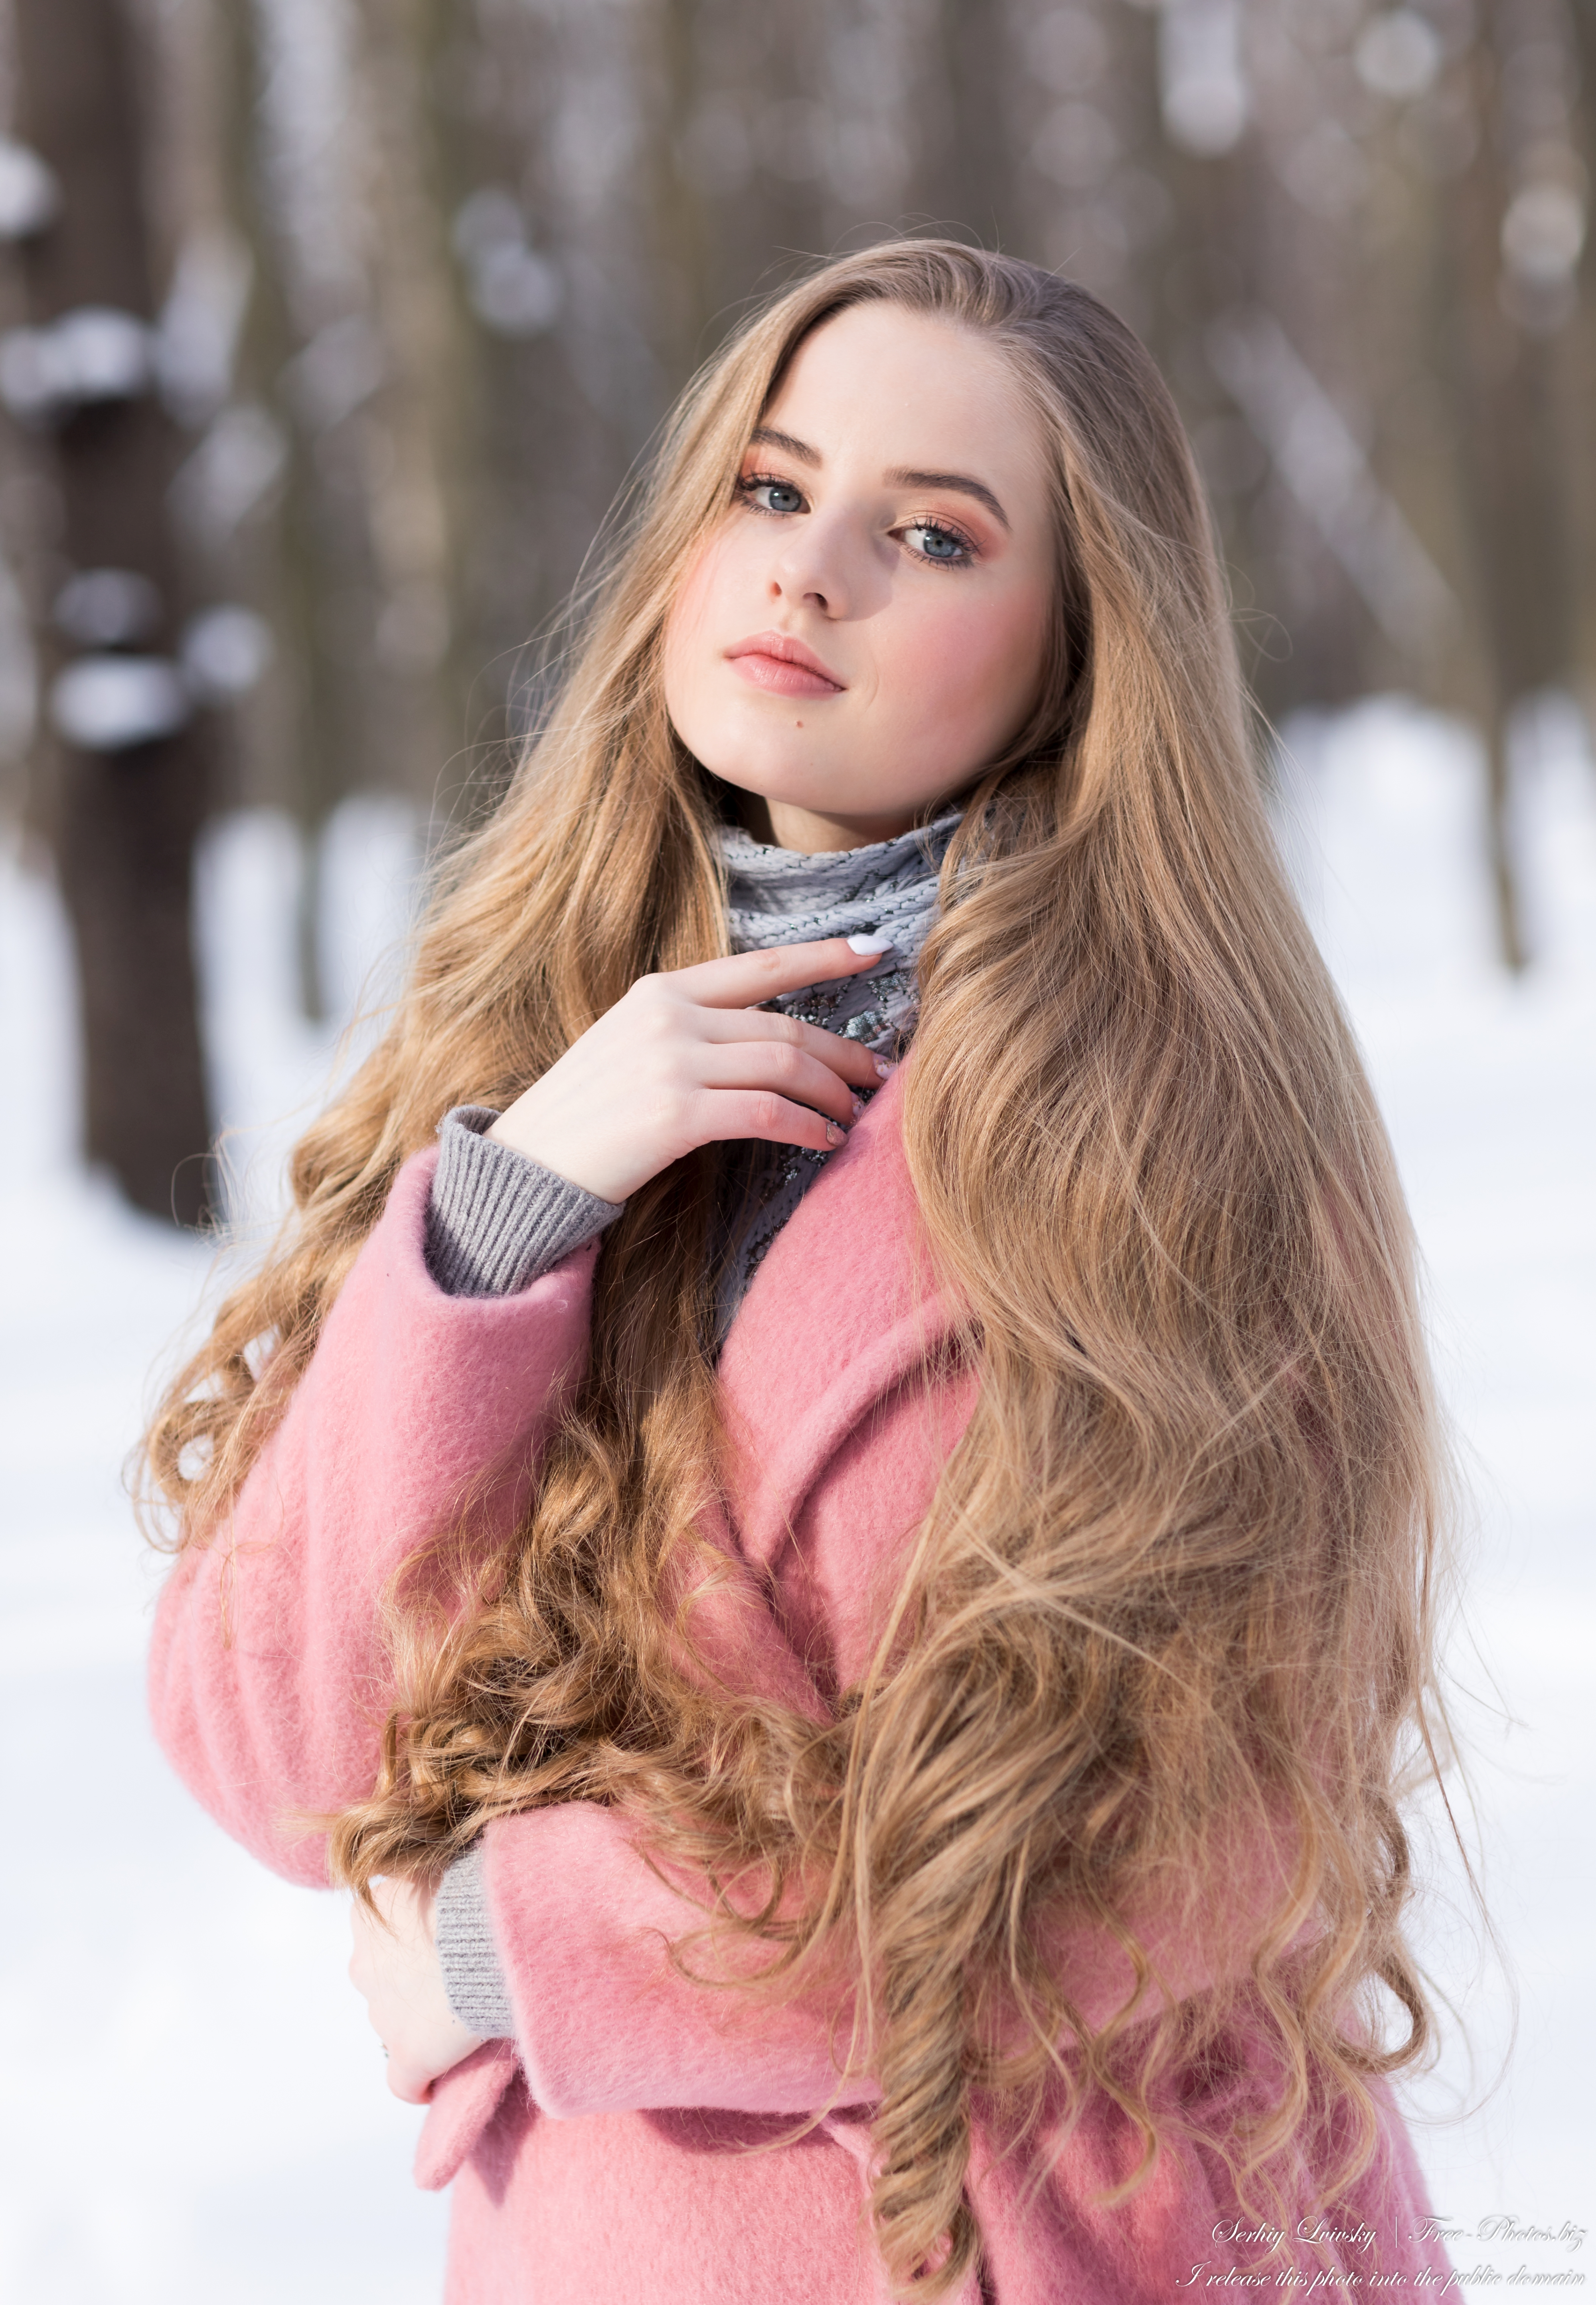 diana_an_18-year-old_natural_blonde_girl_photographed_by_serhiy_lvivsky_in_feb_2021_05